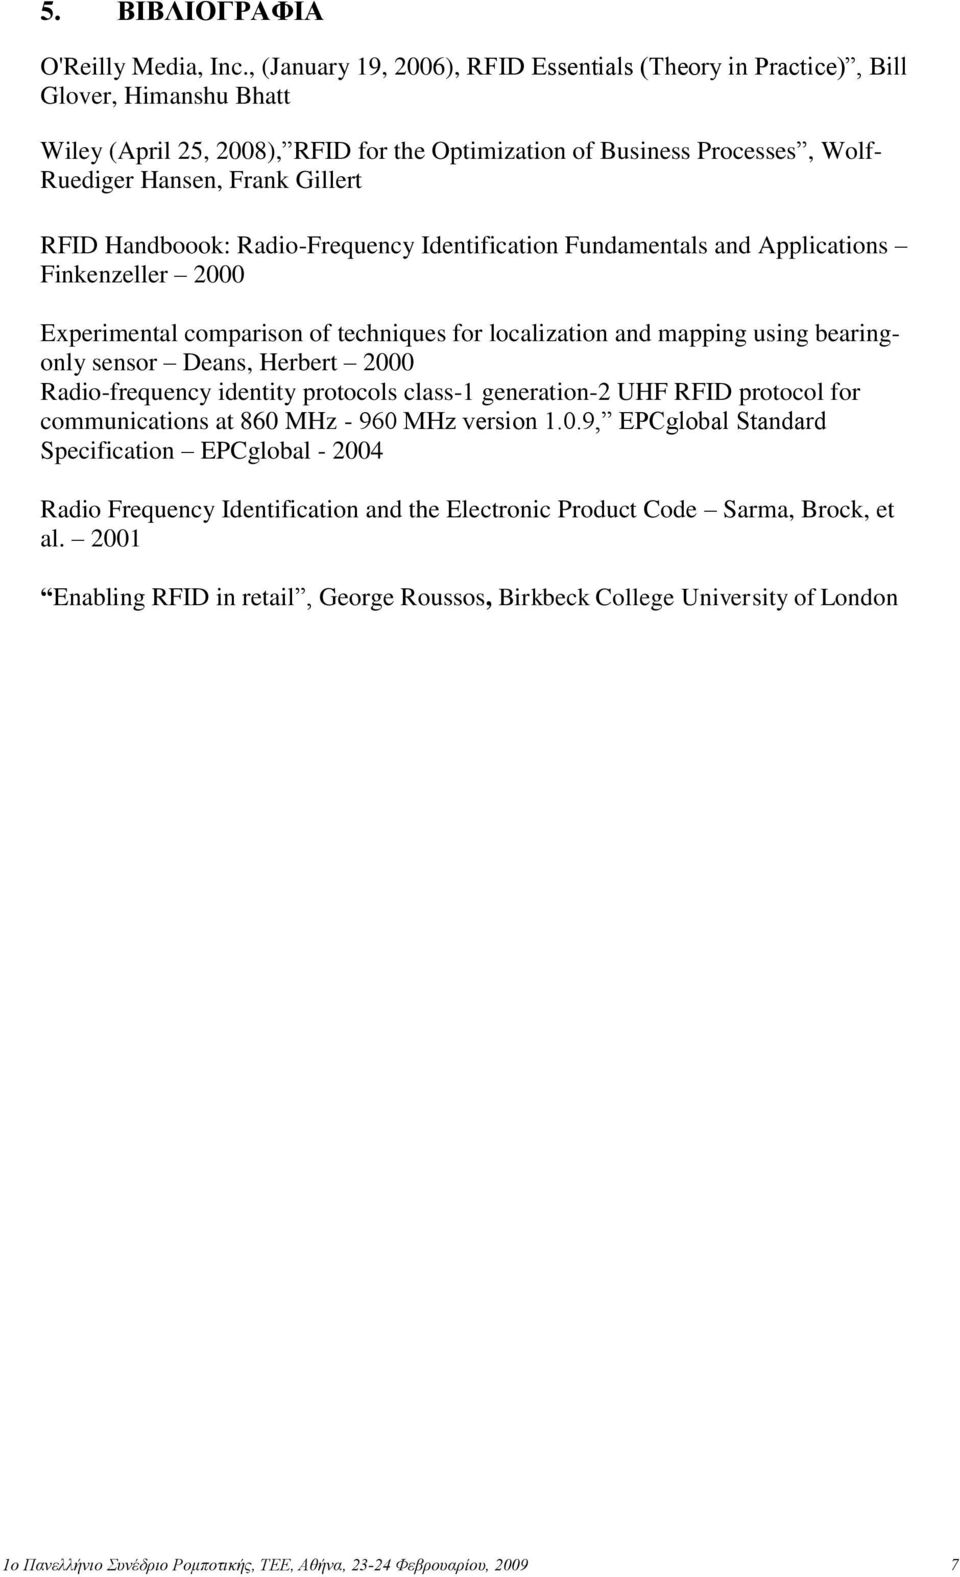 RFID Handboook: Radio-Frequency Identification Fundamentals and Applications Finkenzeller 2000 Experimental comparison of techniques for localization and mapping using bearingonly sensor Deans,